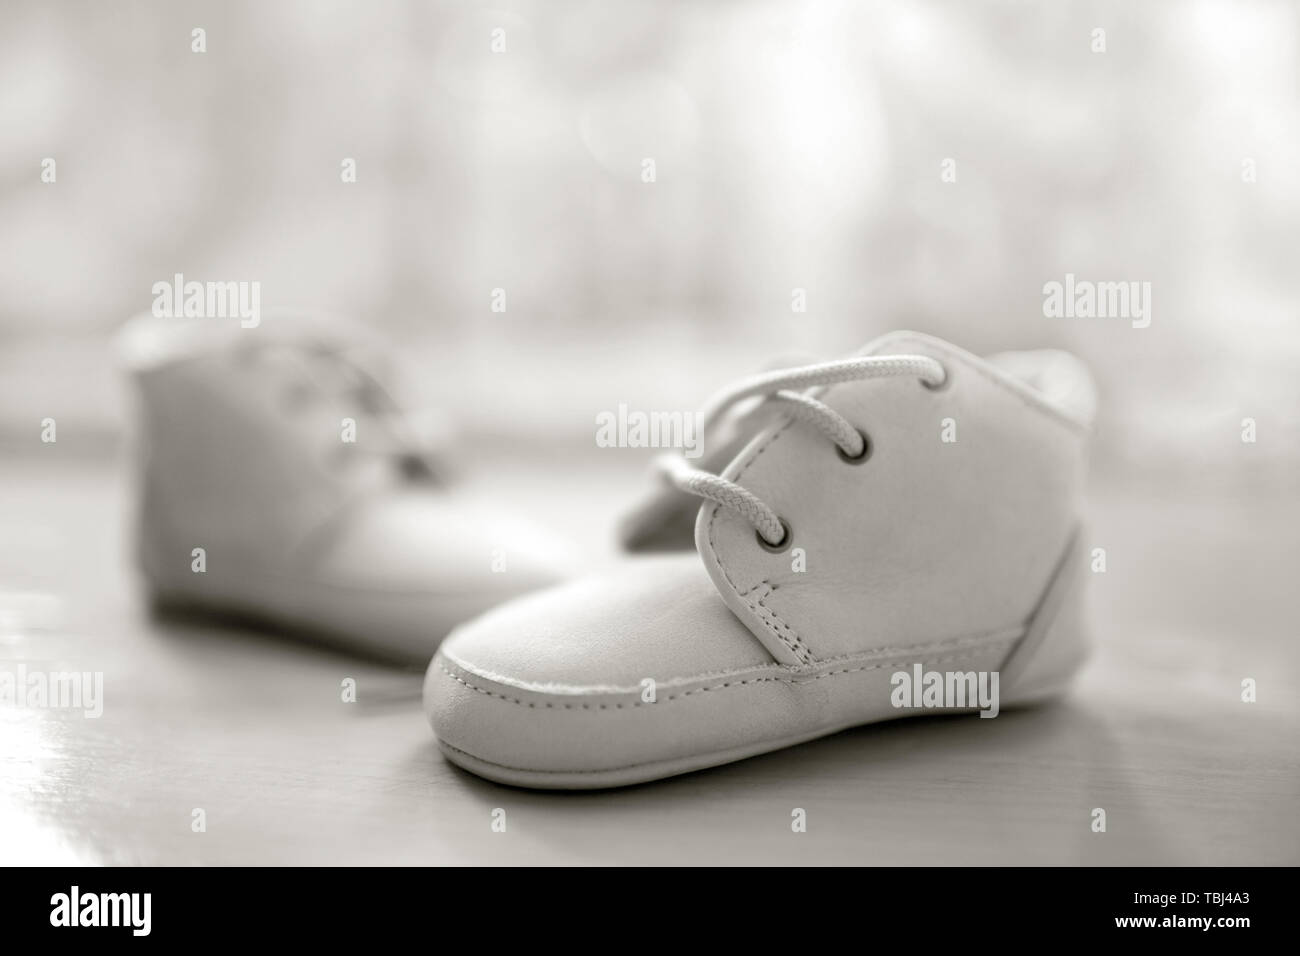 White baby booties made of leather. Shallow depth of field, closeup - Stock Image